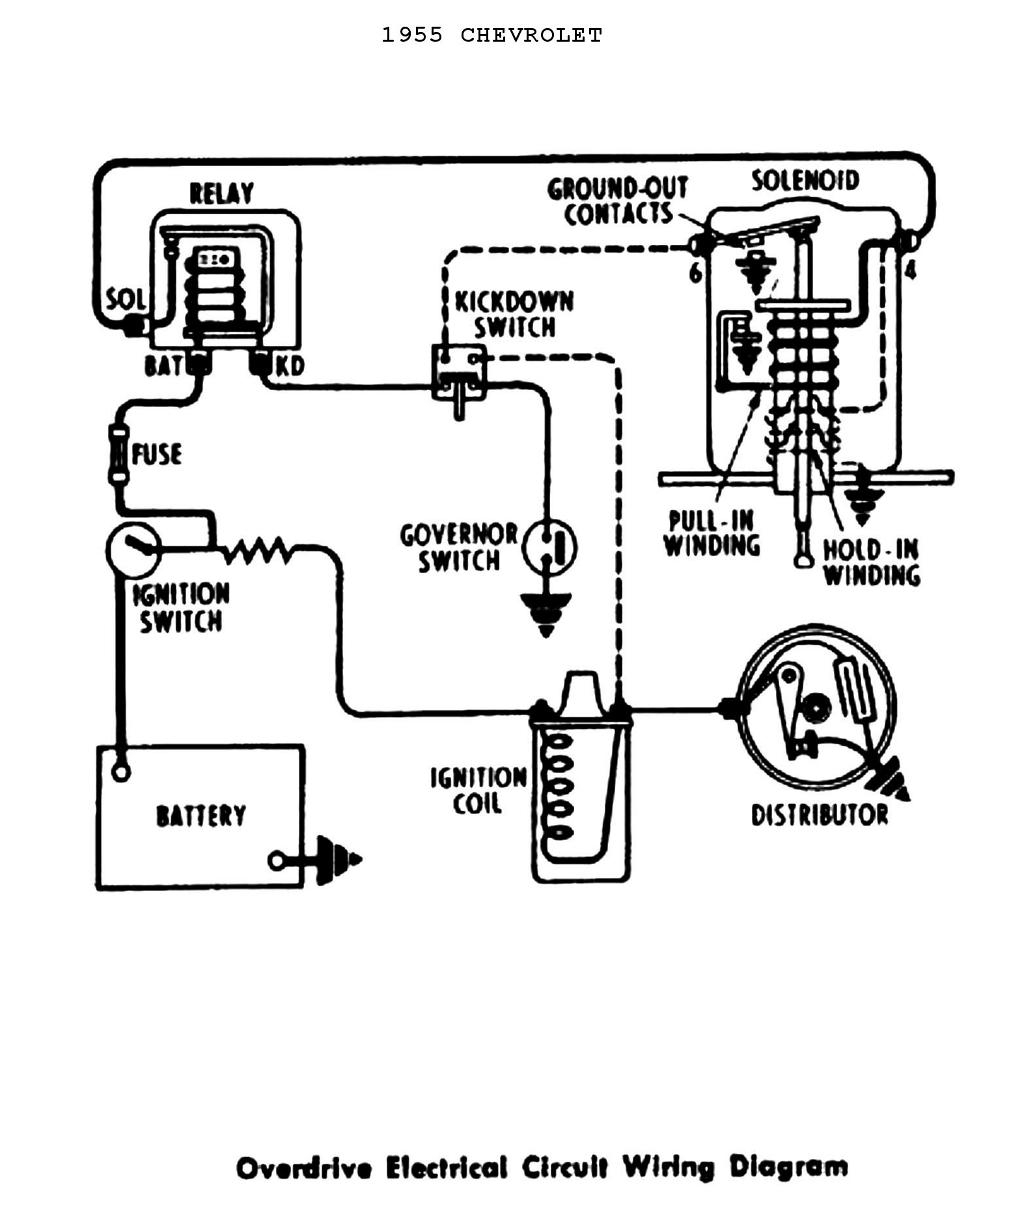 gm horn wiring diagram gm hei distributor wiring schematic | free wiring diagram gm icm wiring diagram #10